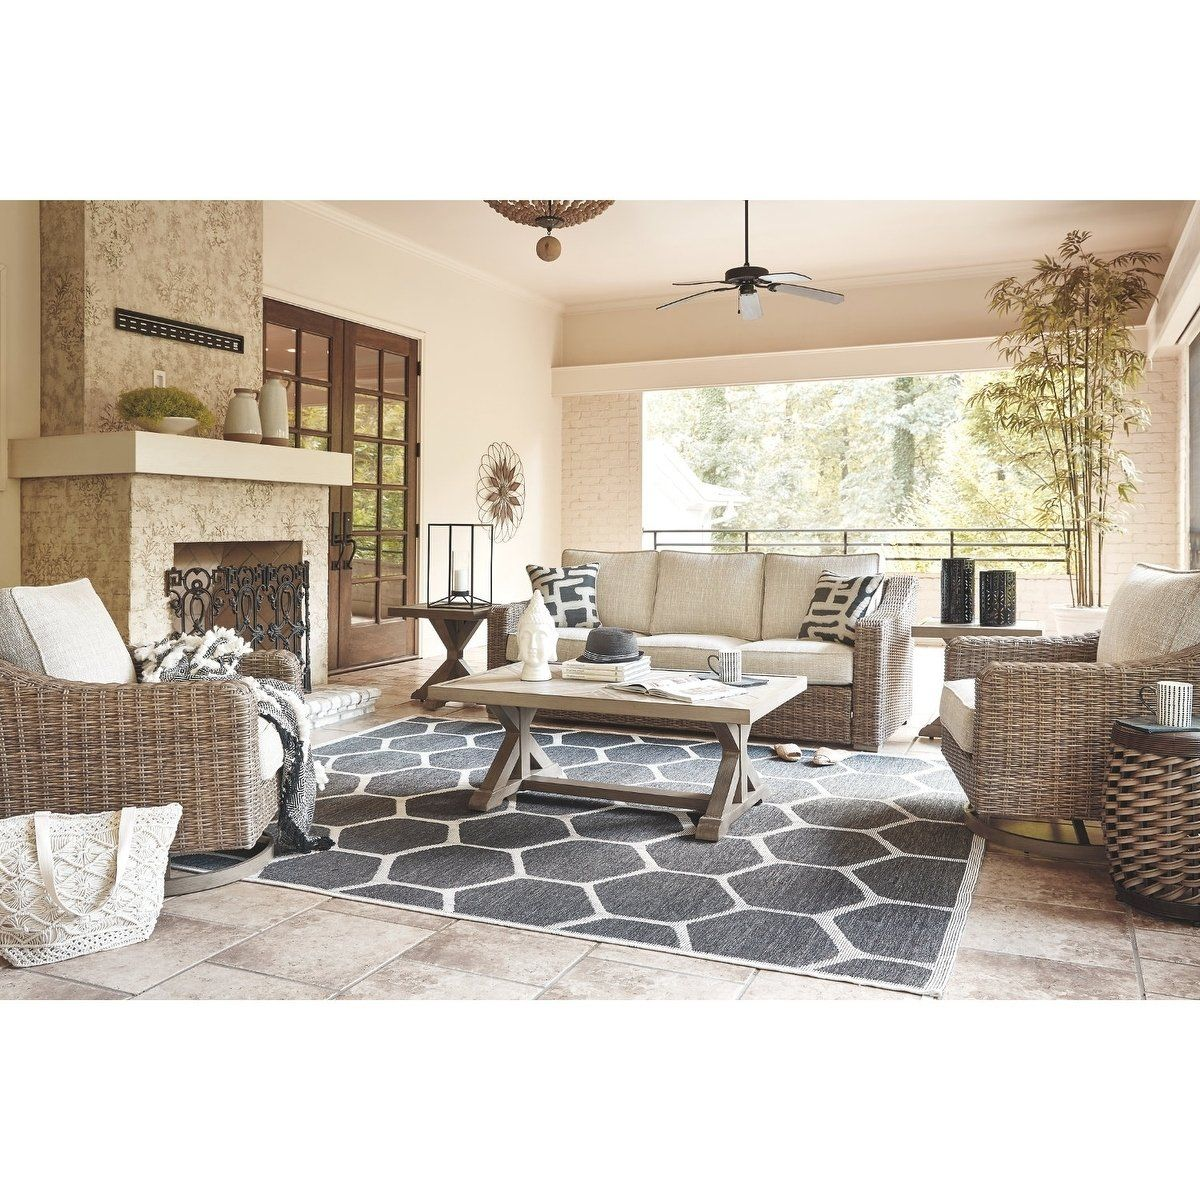 Ashley Furniture Signature Design Clare View Outdoor ... on Clare View Beige Outdoor Living Room id=49613